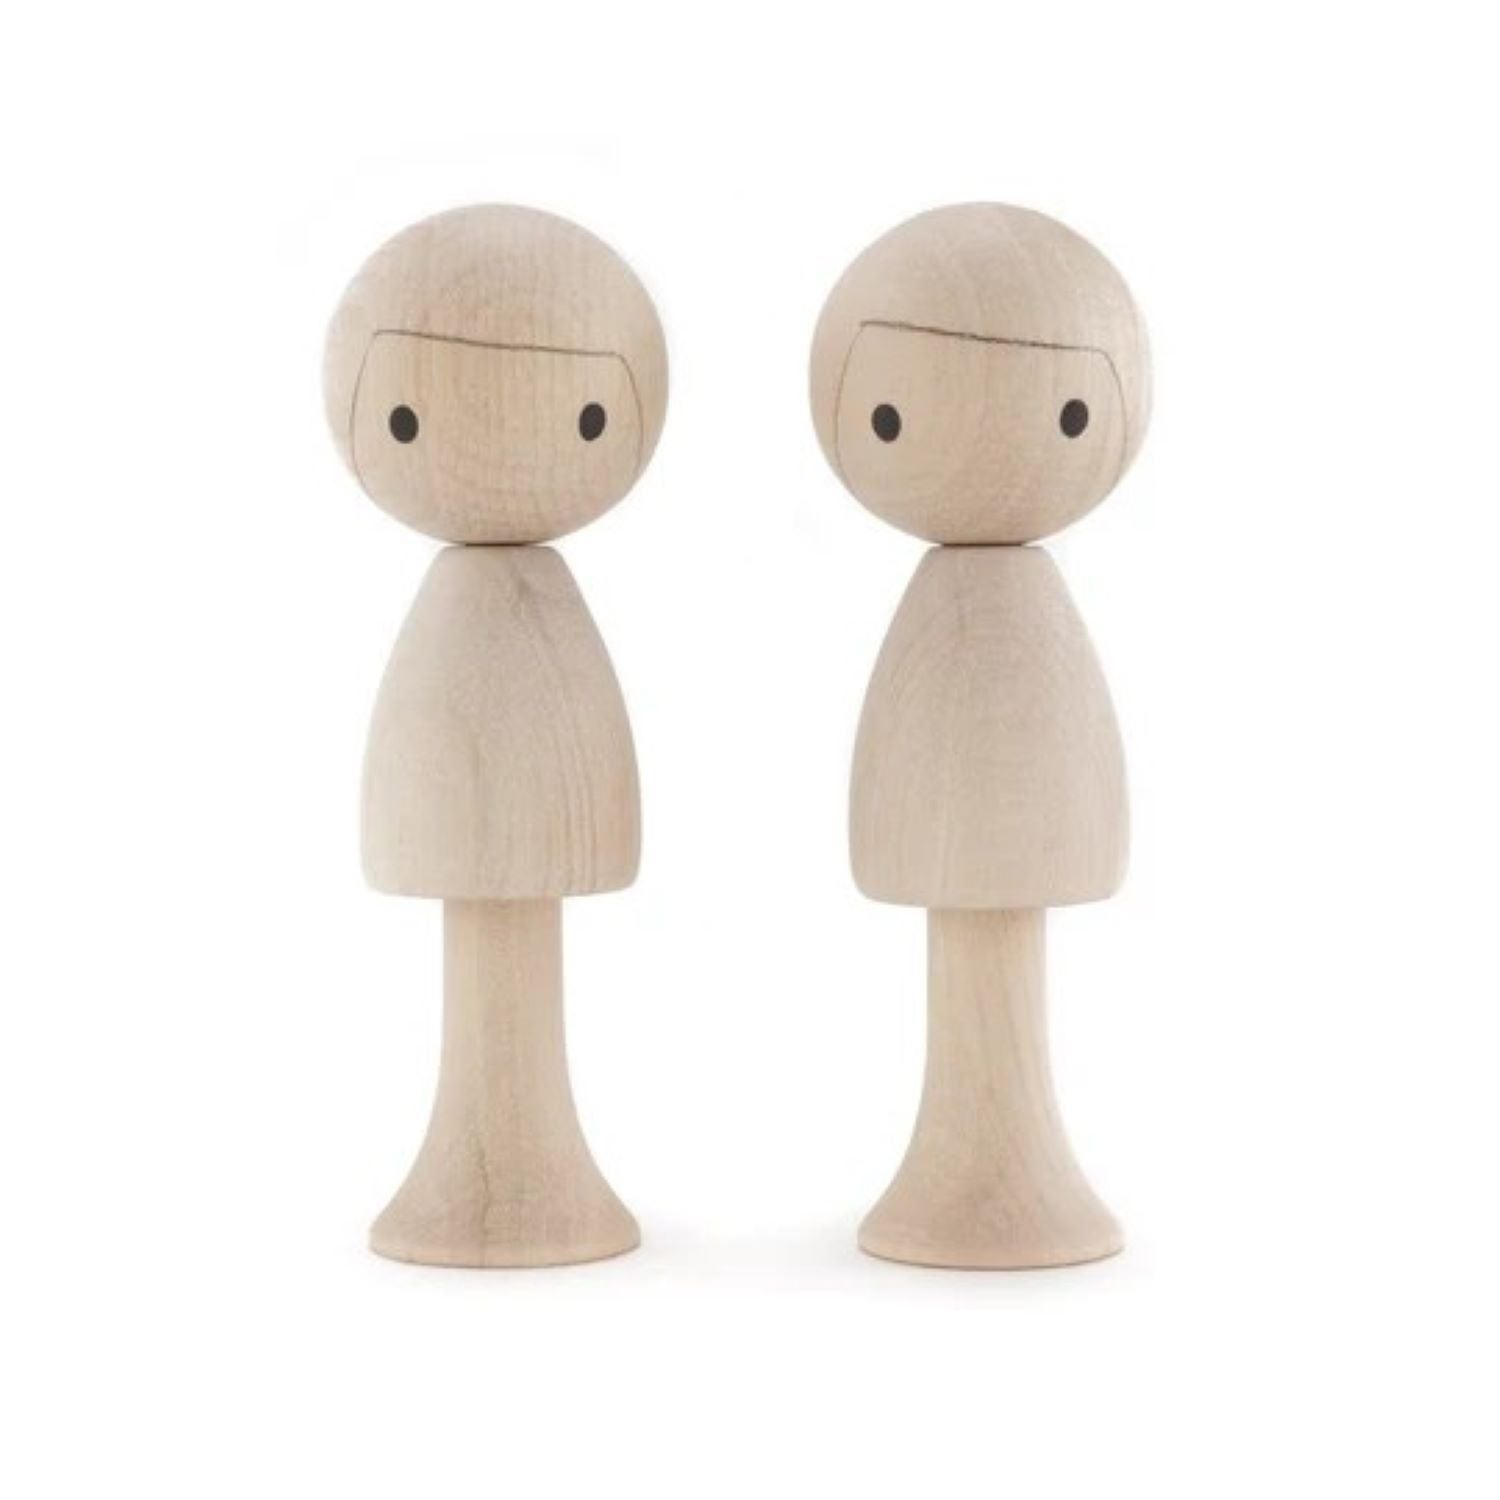 Clicques - DIY Boys Wooden Figurines